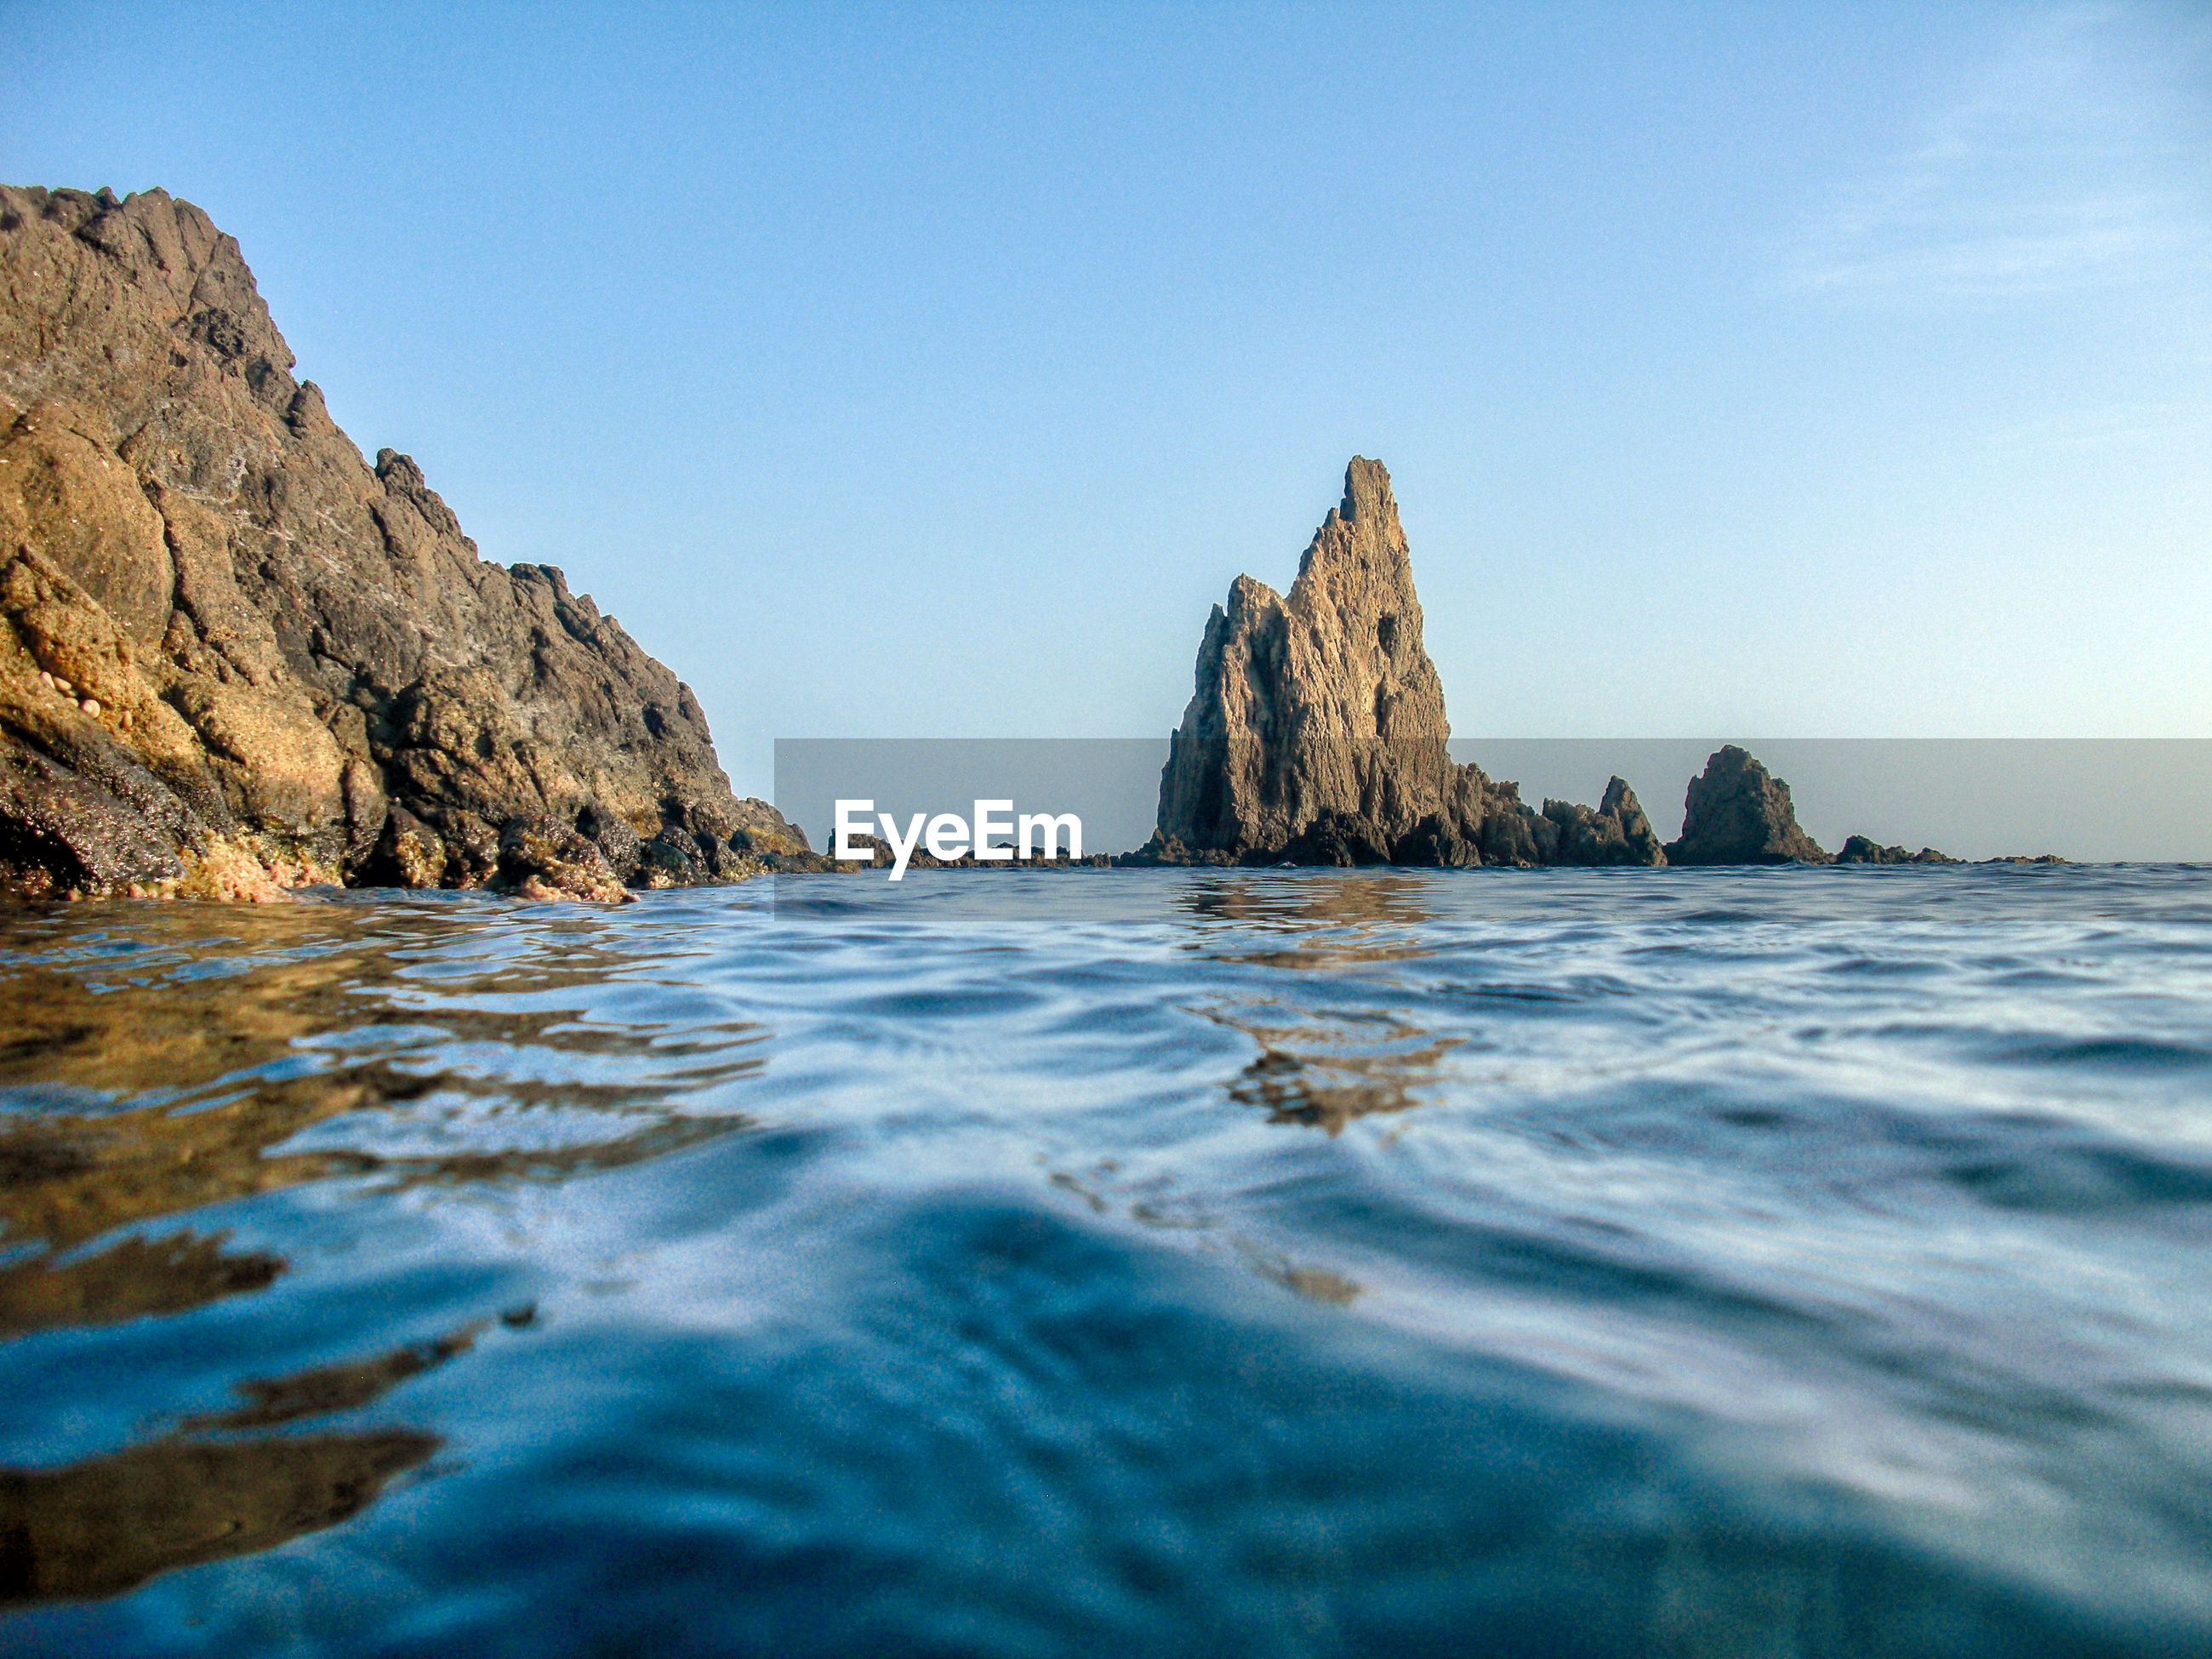 VIEW OF ROCKS IN SEA AGAINST CLEAR BLUE SKY